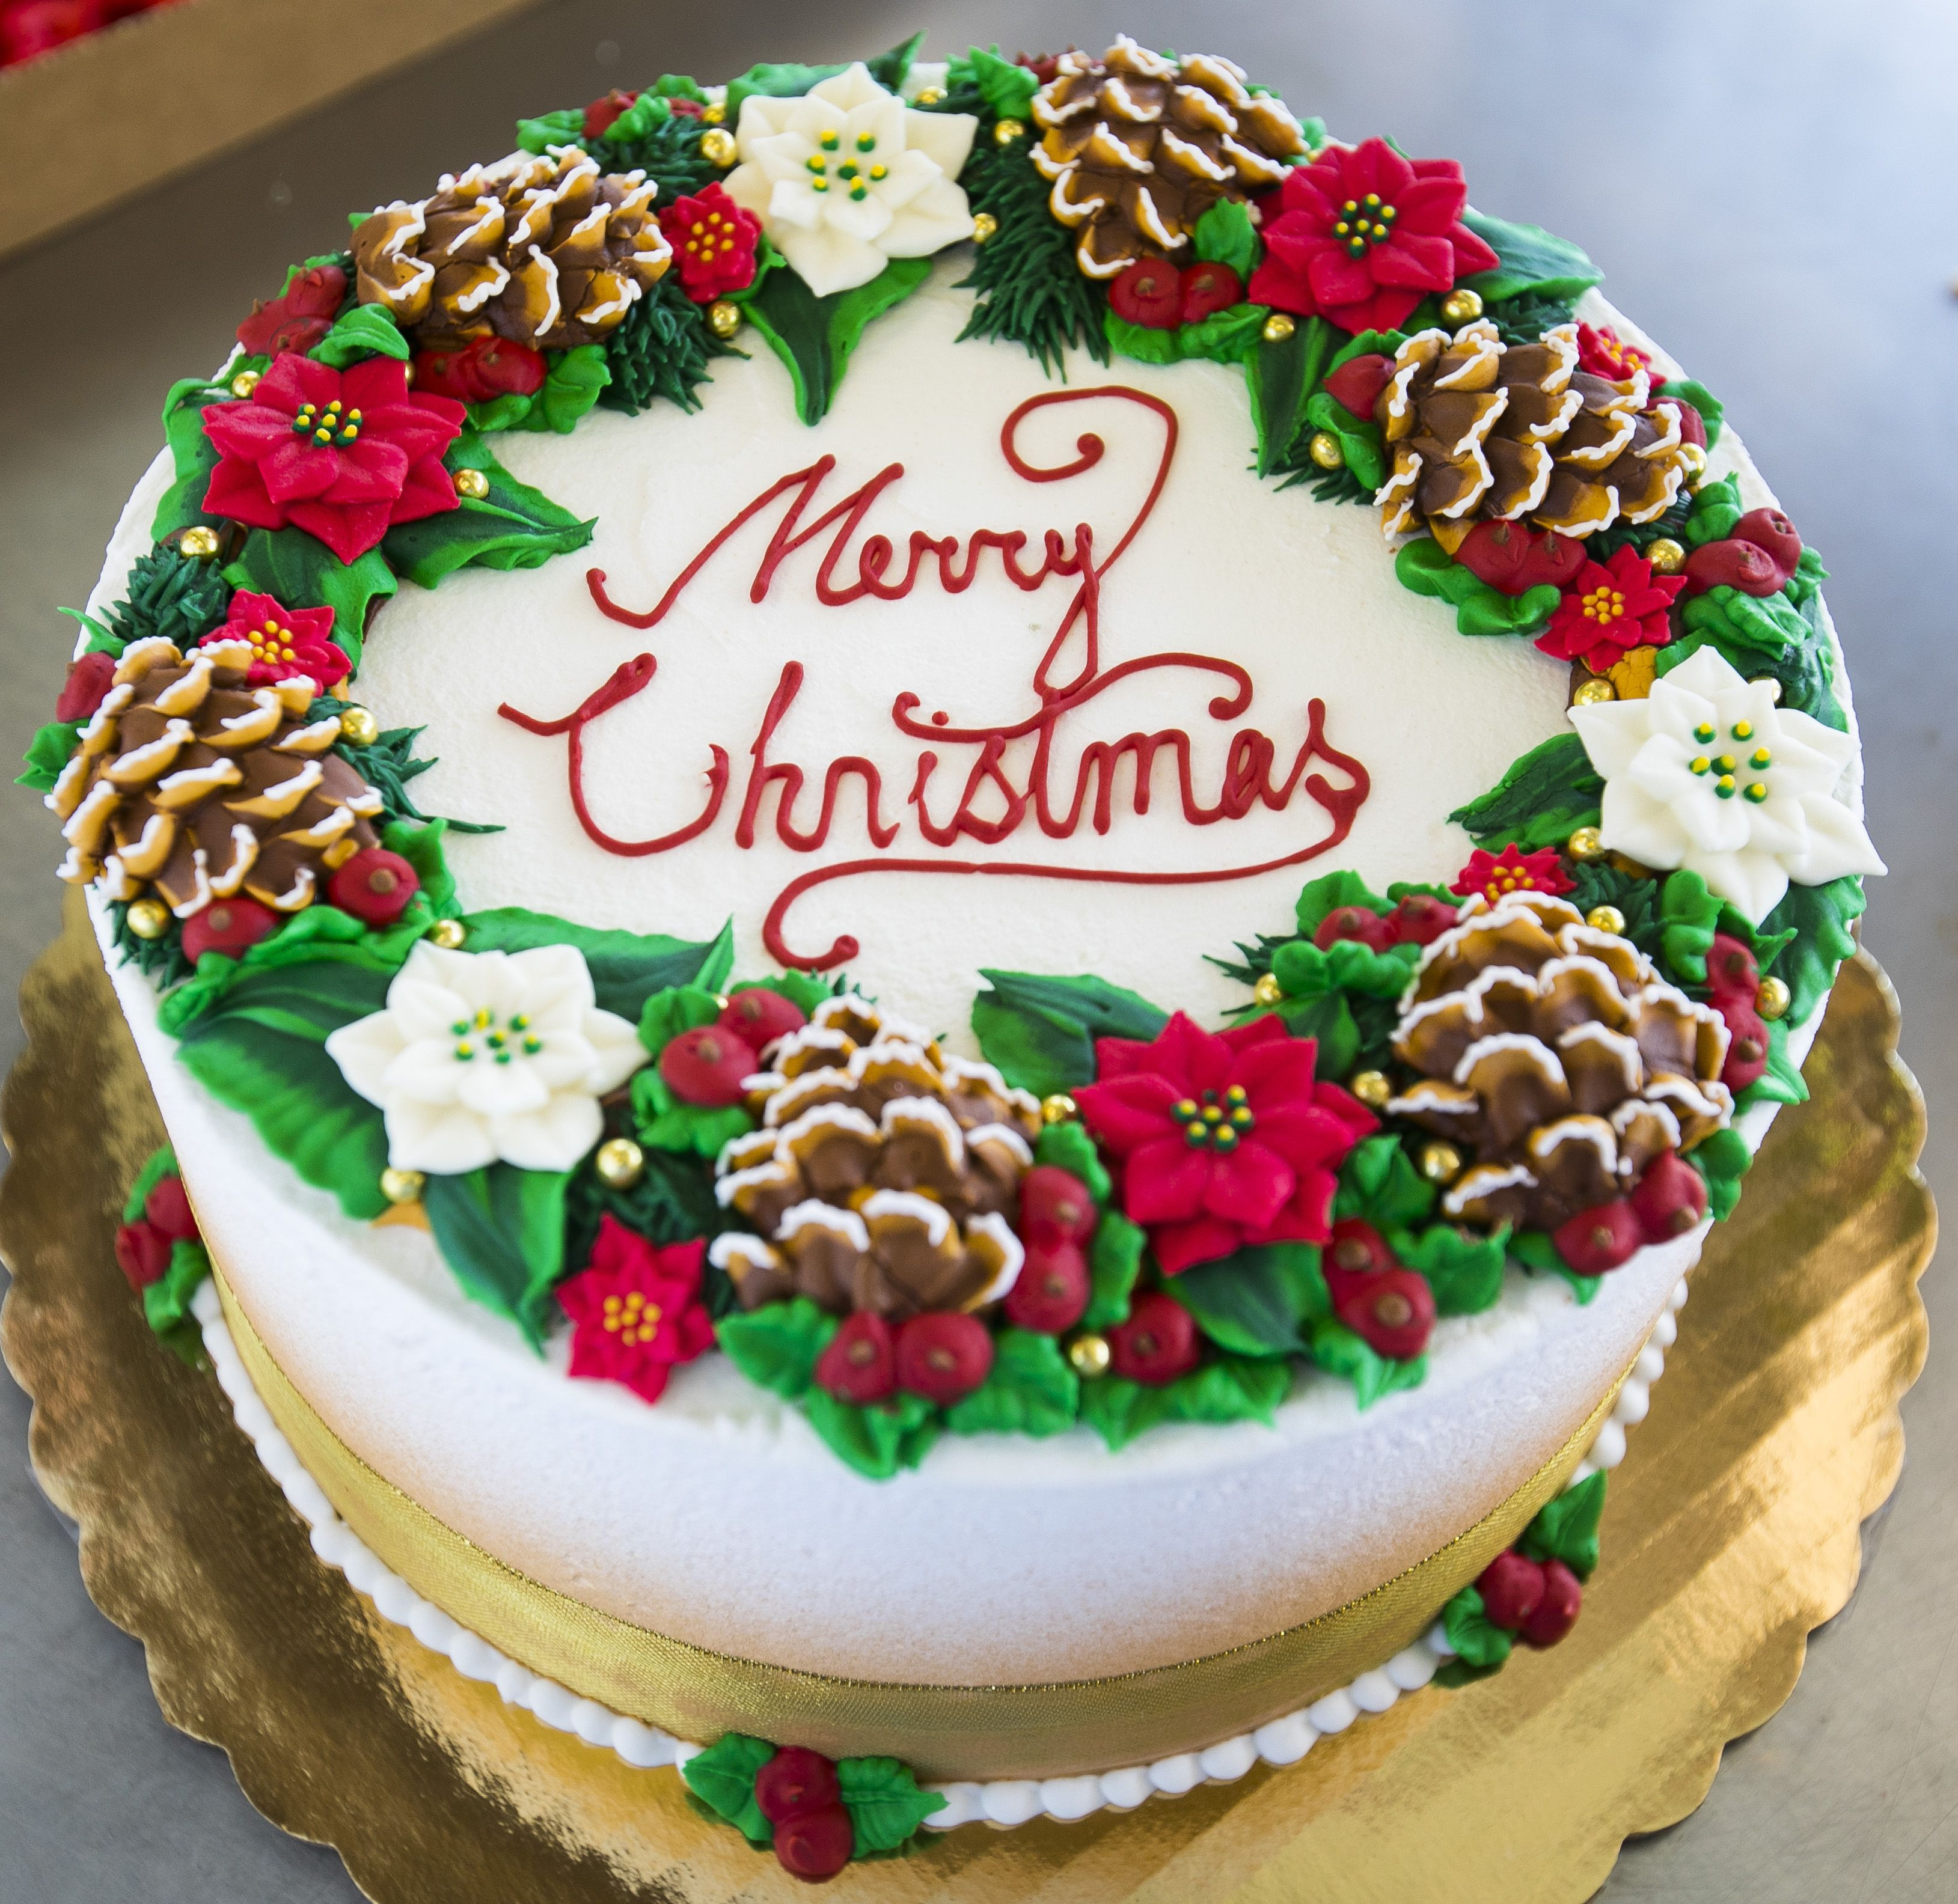 Christmas Sheet Cakes  Bakery Cakes Christmas and Holiday Cakes